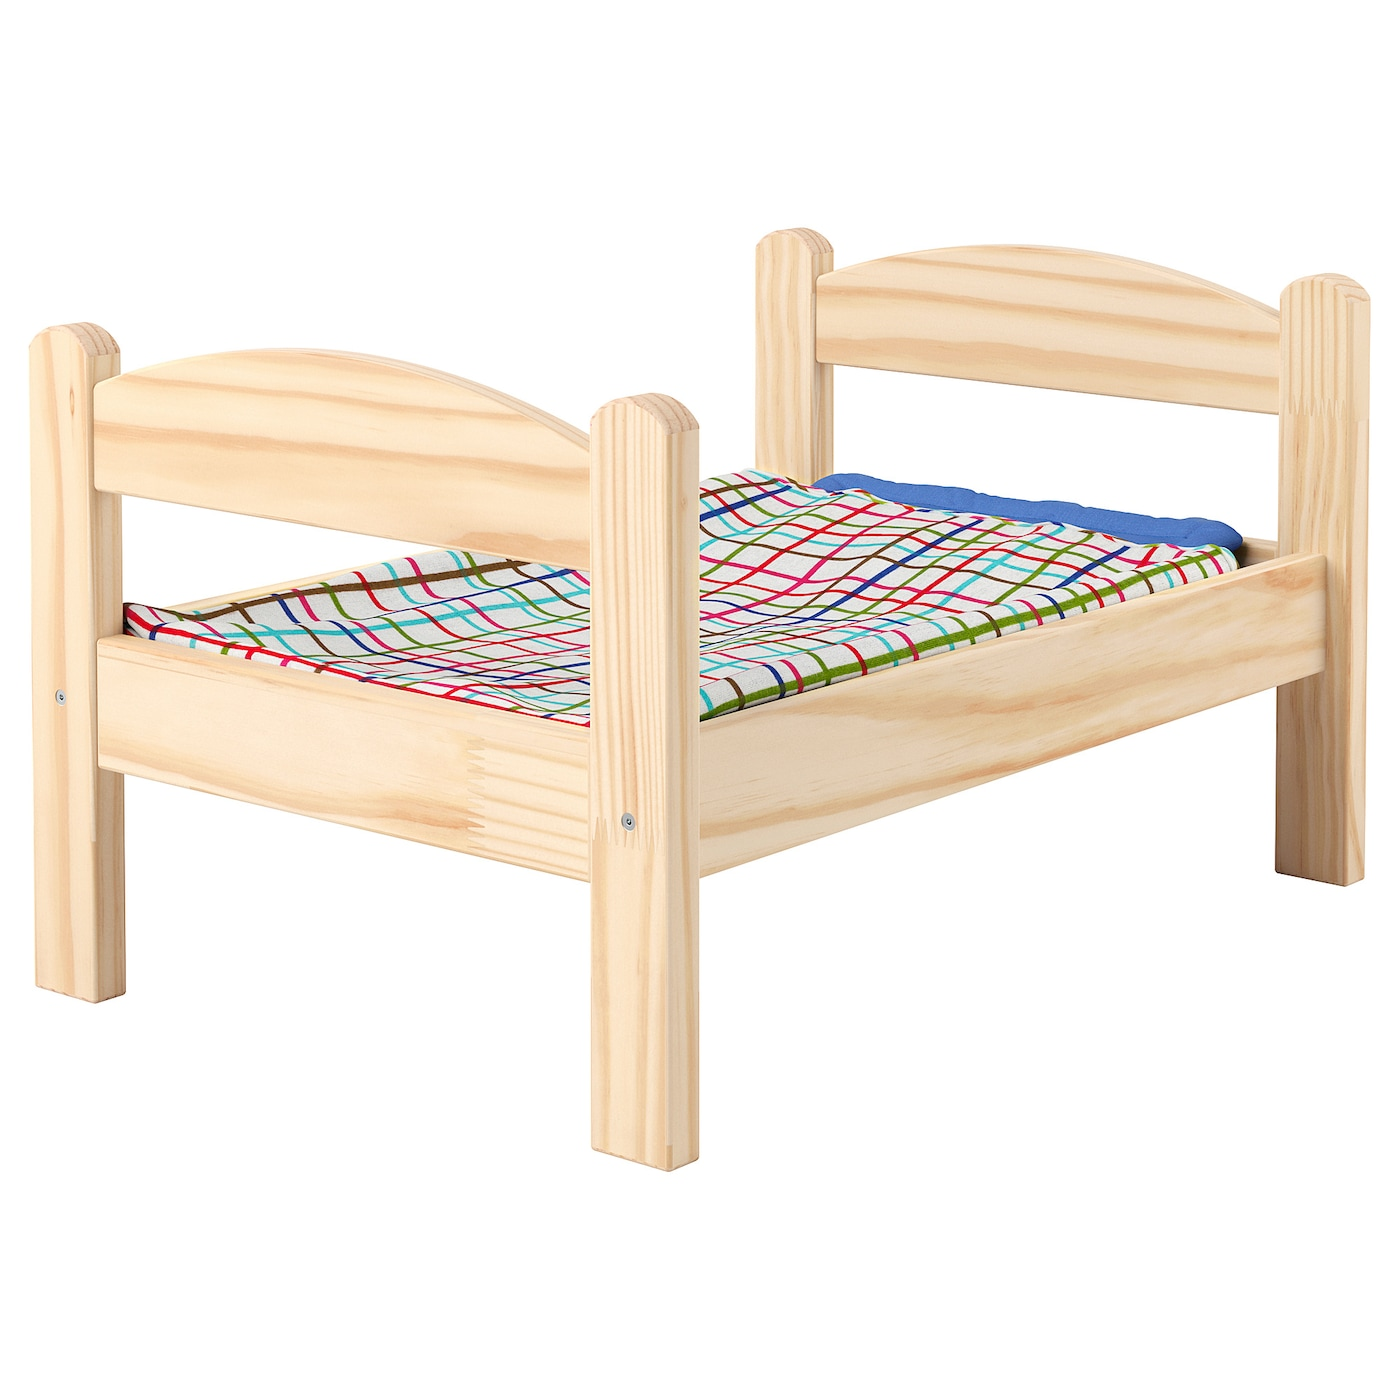 Picture of: Duktig Pine Multicolour Doll S Bed With Bedlinen Set Ikea